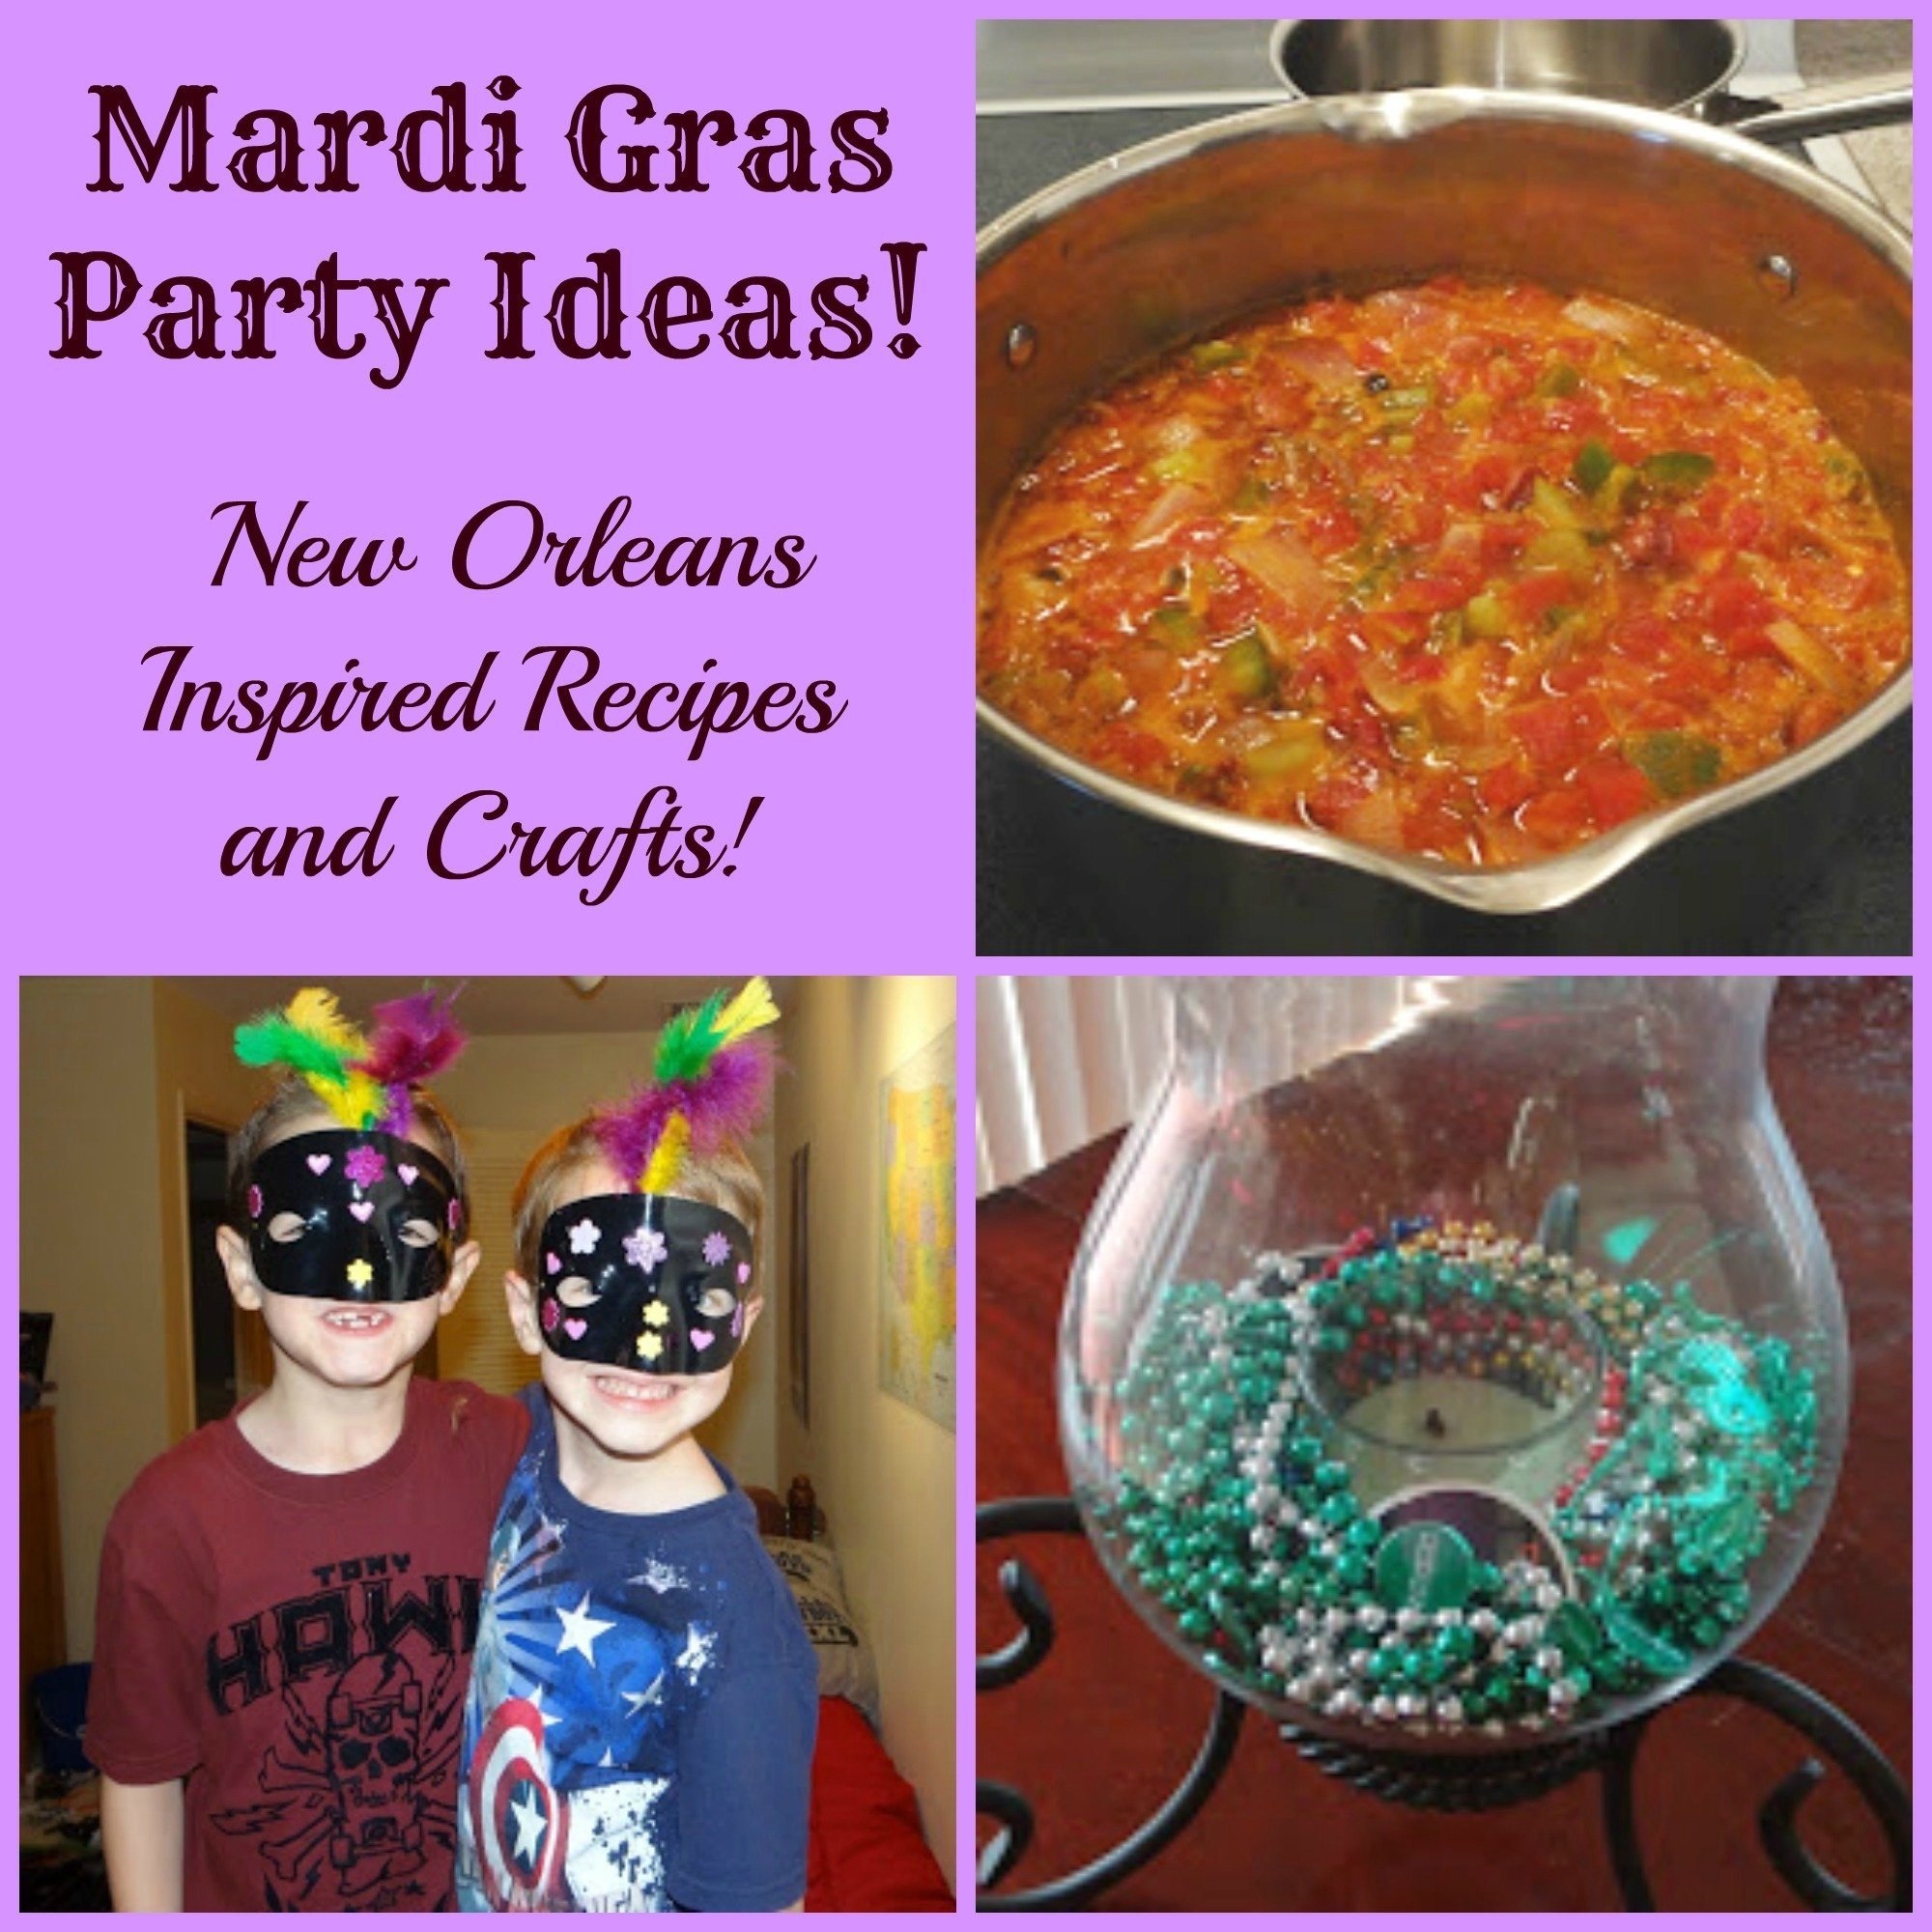 10 Stylish Mardi Gras Party Food Ideas mardi gras party ideas we made new orleans inspired recipes and 2021